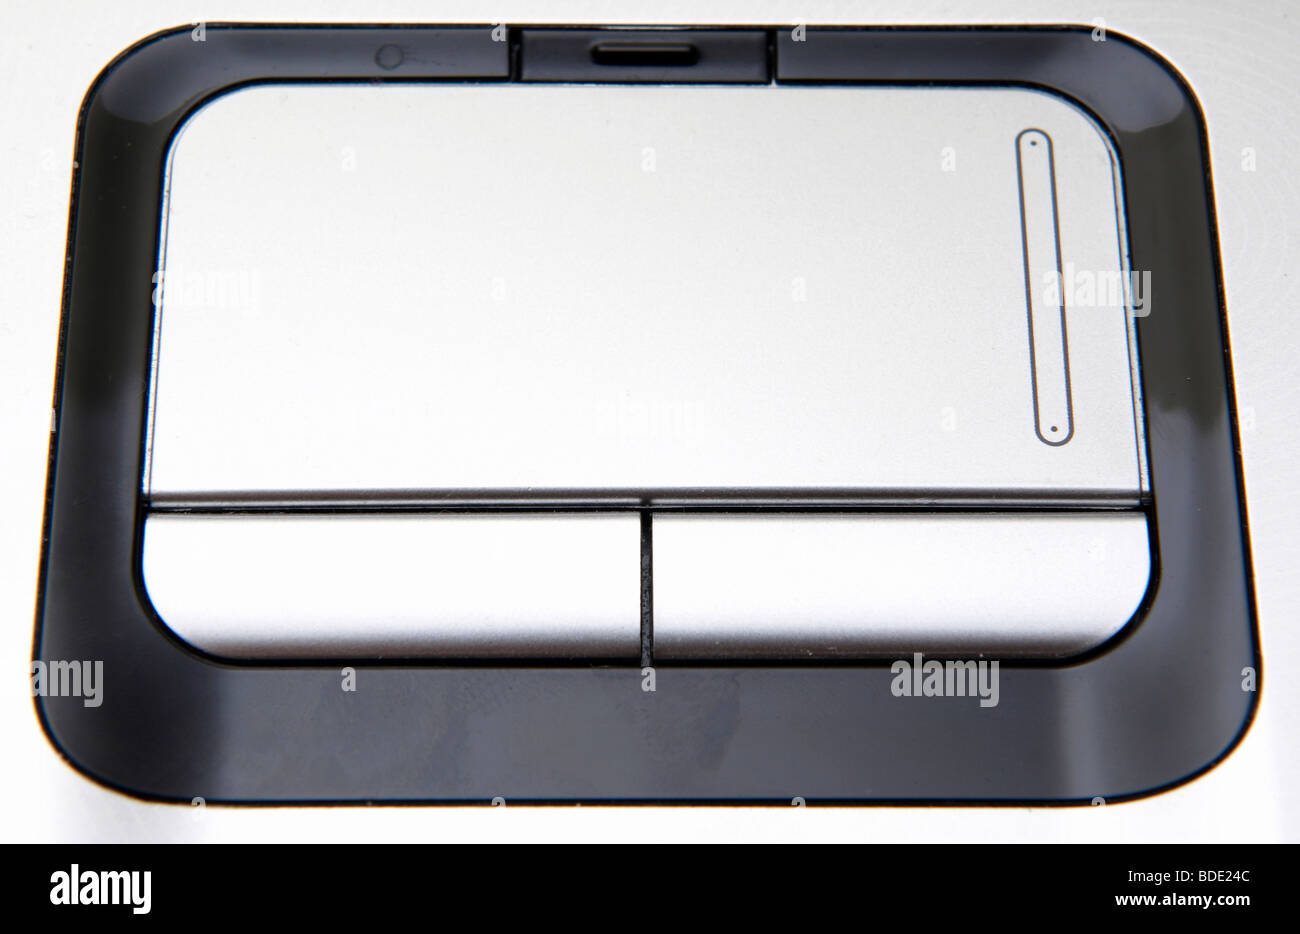 Silver laptop touchpad close up view - Stock Image